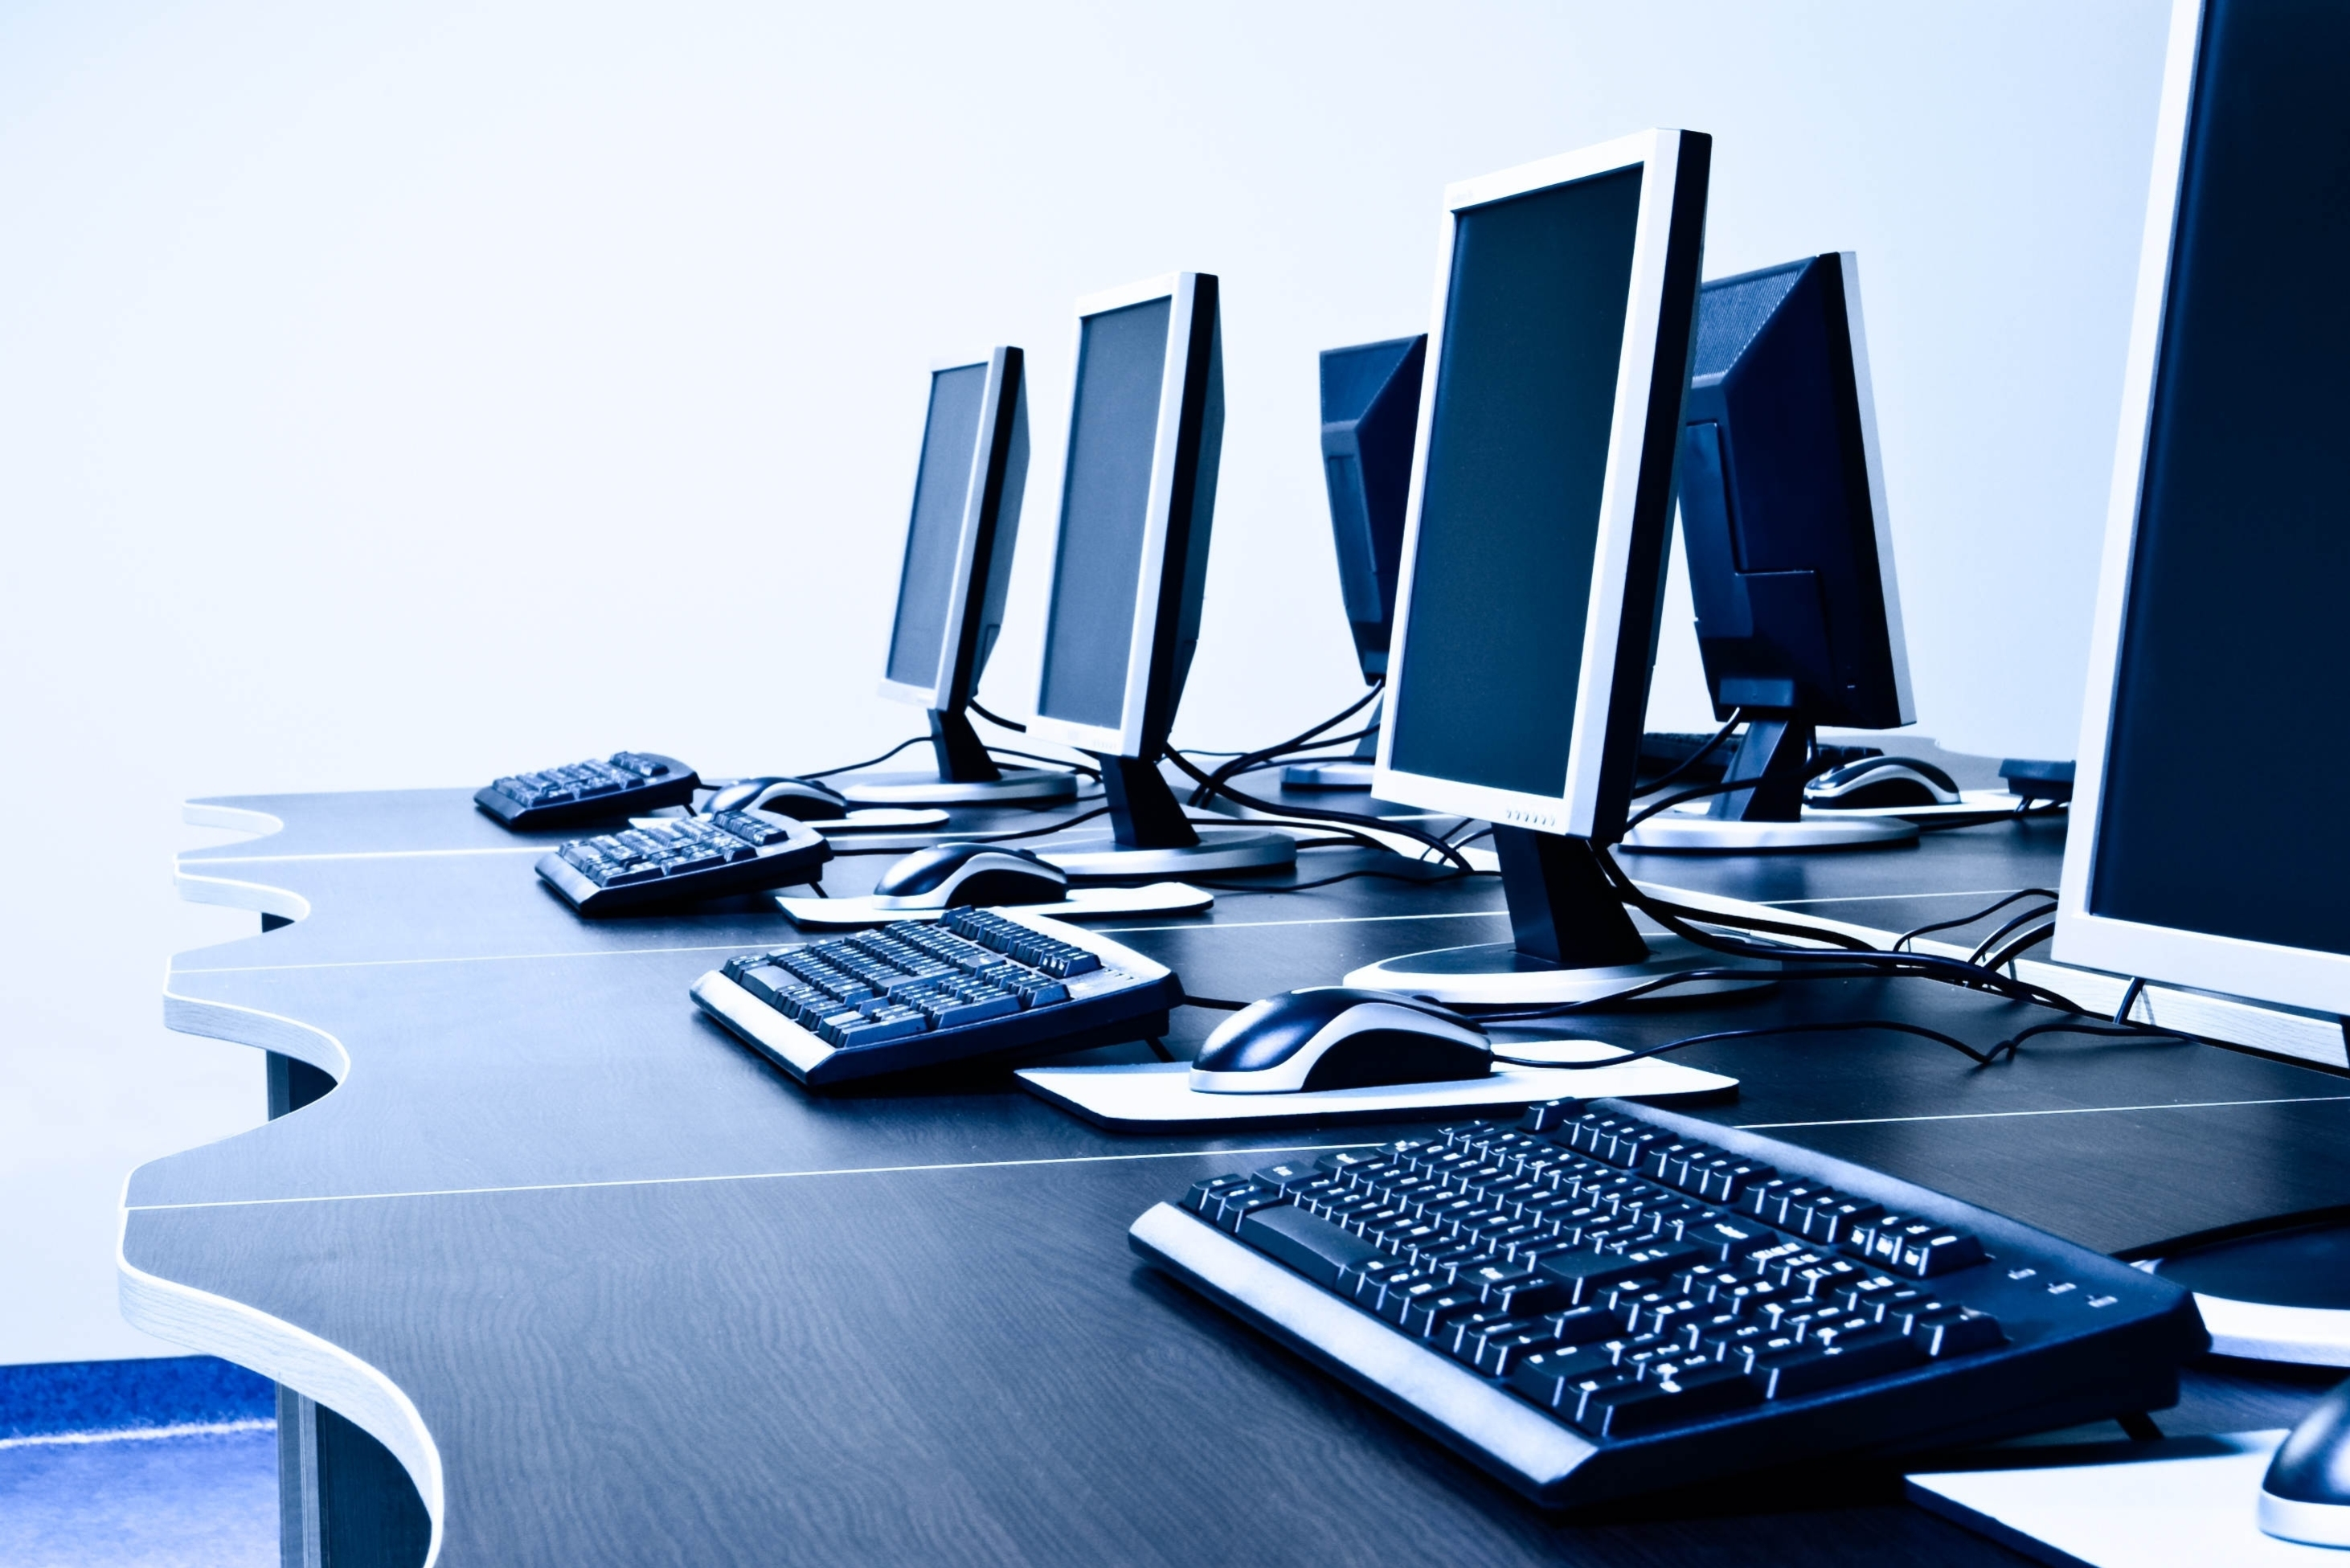 computers in defence field Physorg provides the latest news on hi-tech, innovation and new inventions technology, computer news and information.